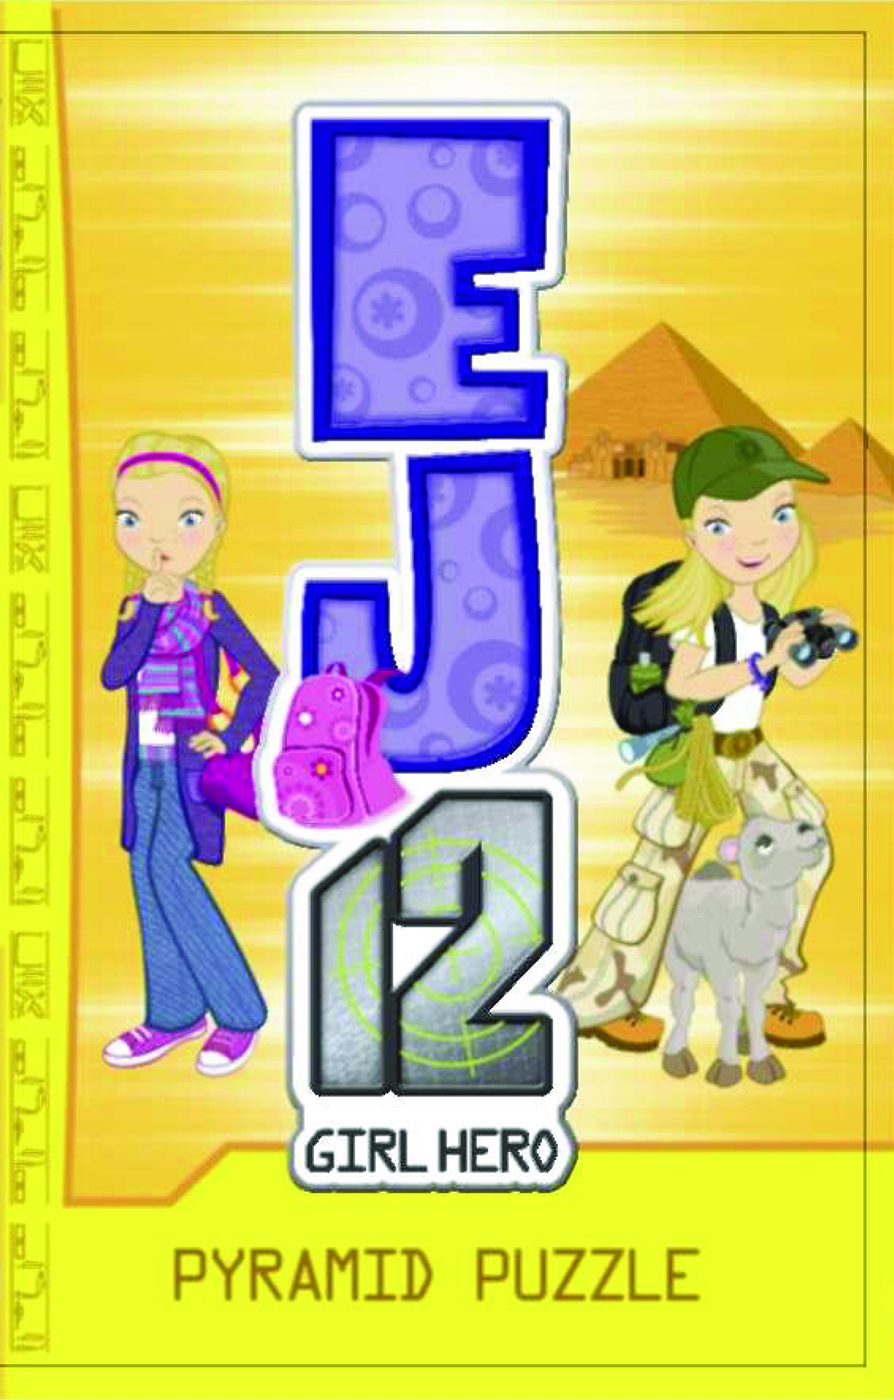 EJ12 Girl Hero 10  Pyramid Puzzle